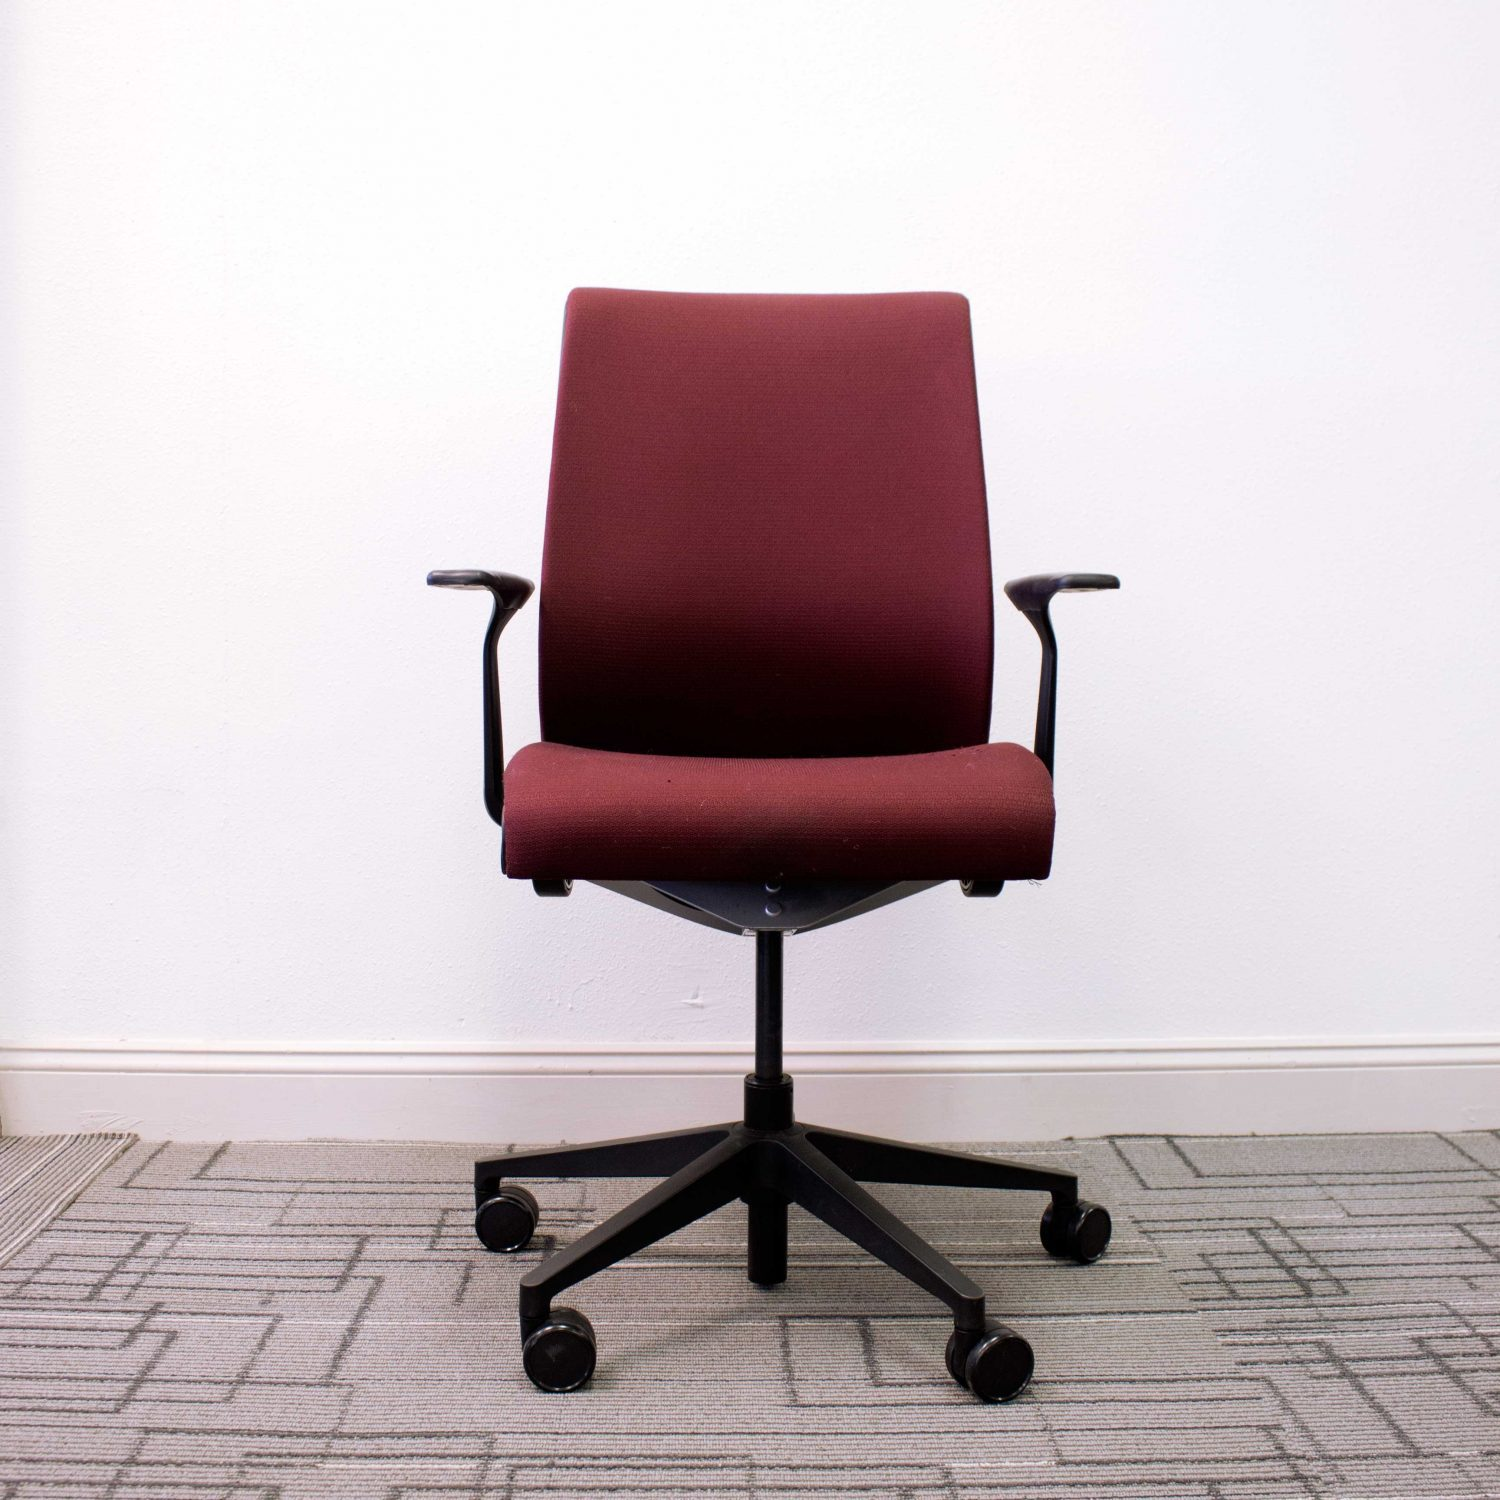 Steelcase Think Chair Used Steelcase Think Chair Red